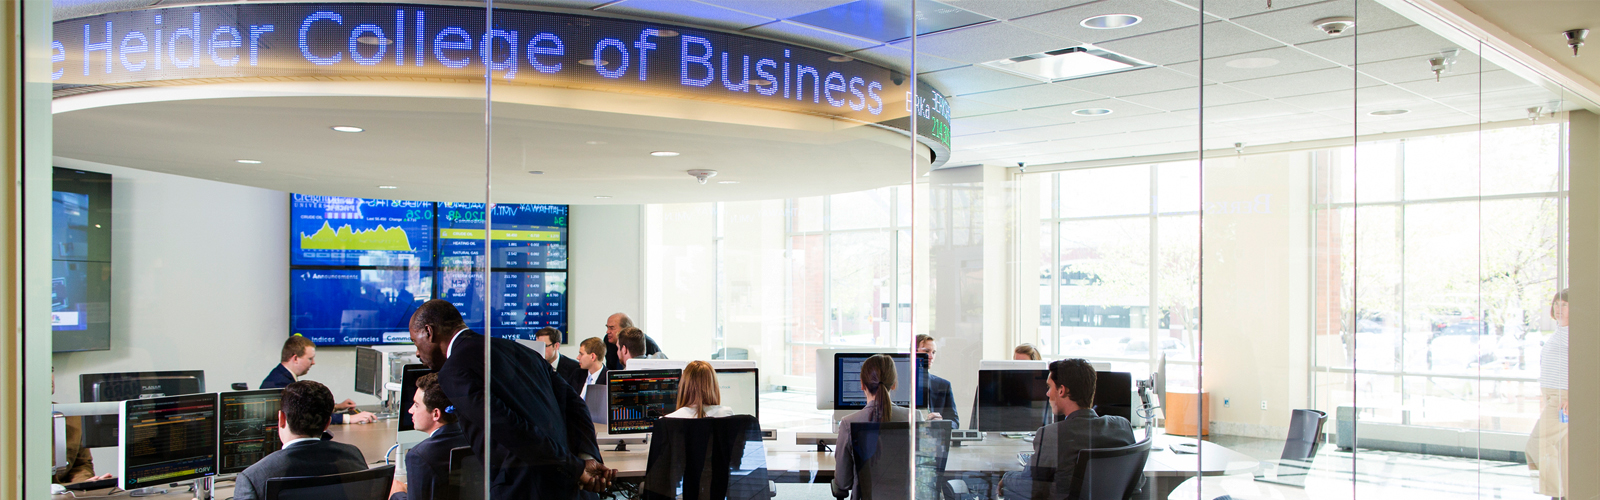 Heider Securities Investment and Analysis Center, Creighton university